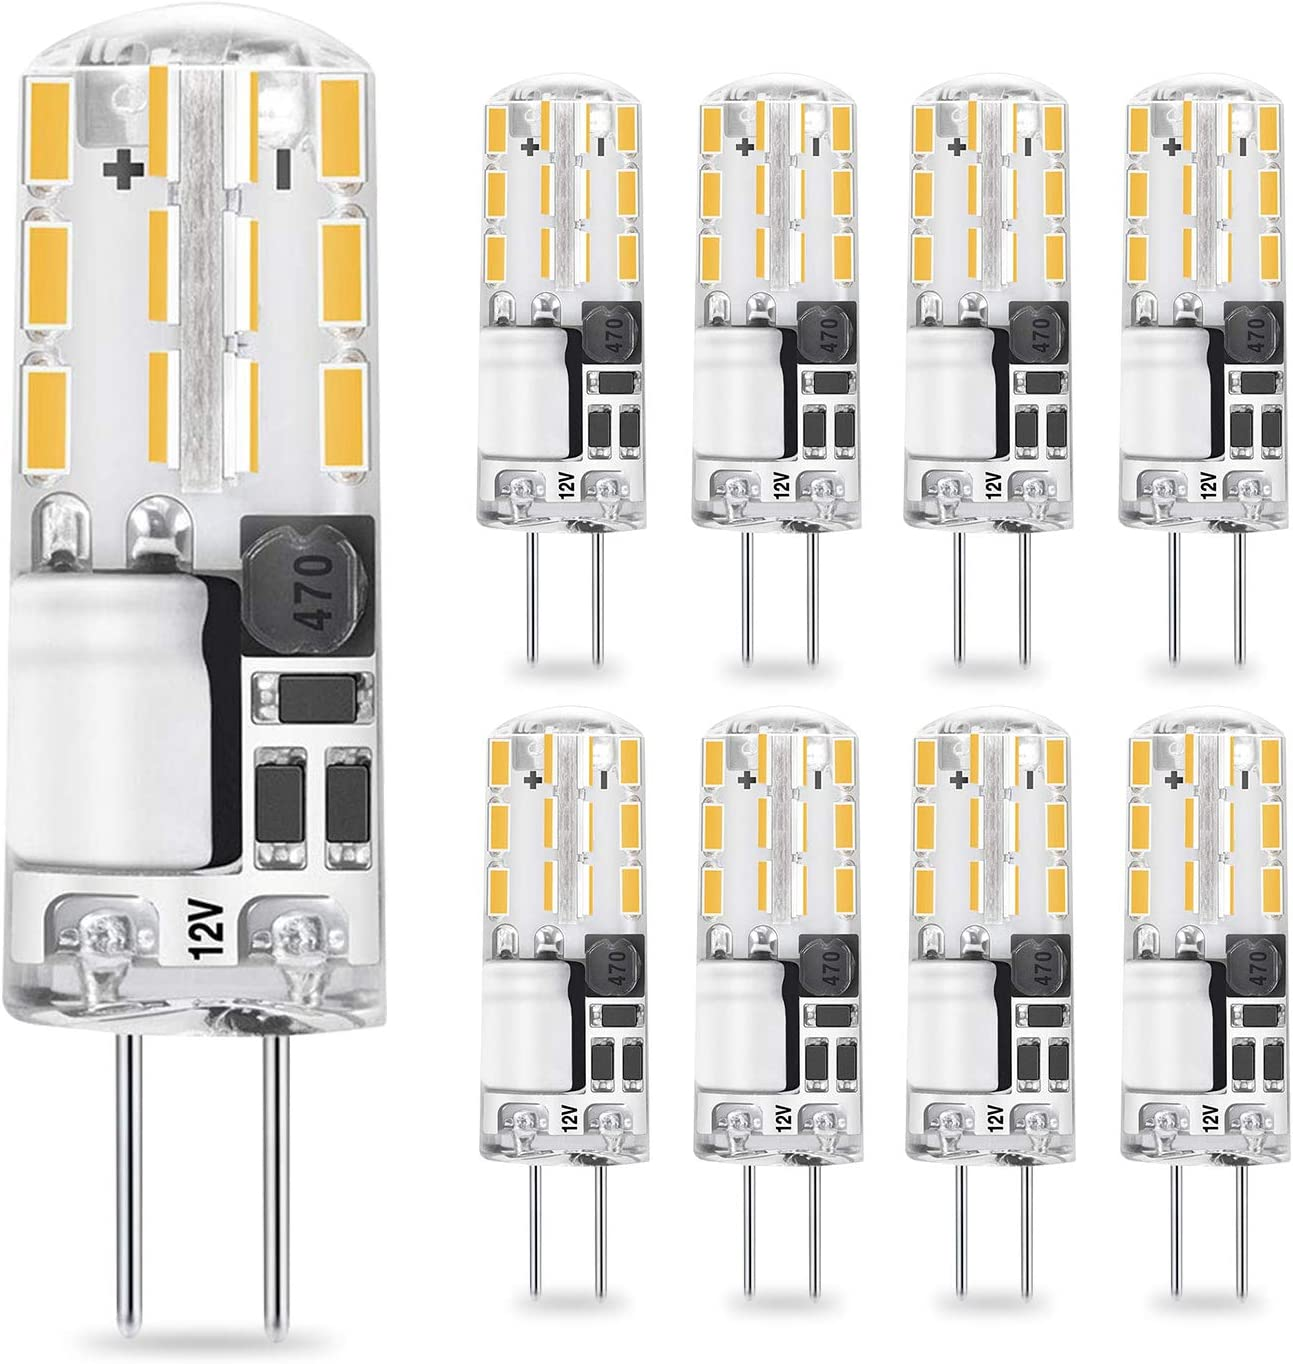 6 Ampoules Halogene G4 10w 12v Clear Lamp LSC 2000 H